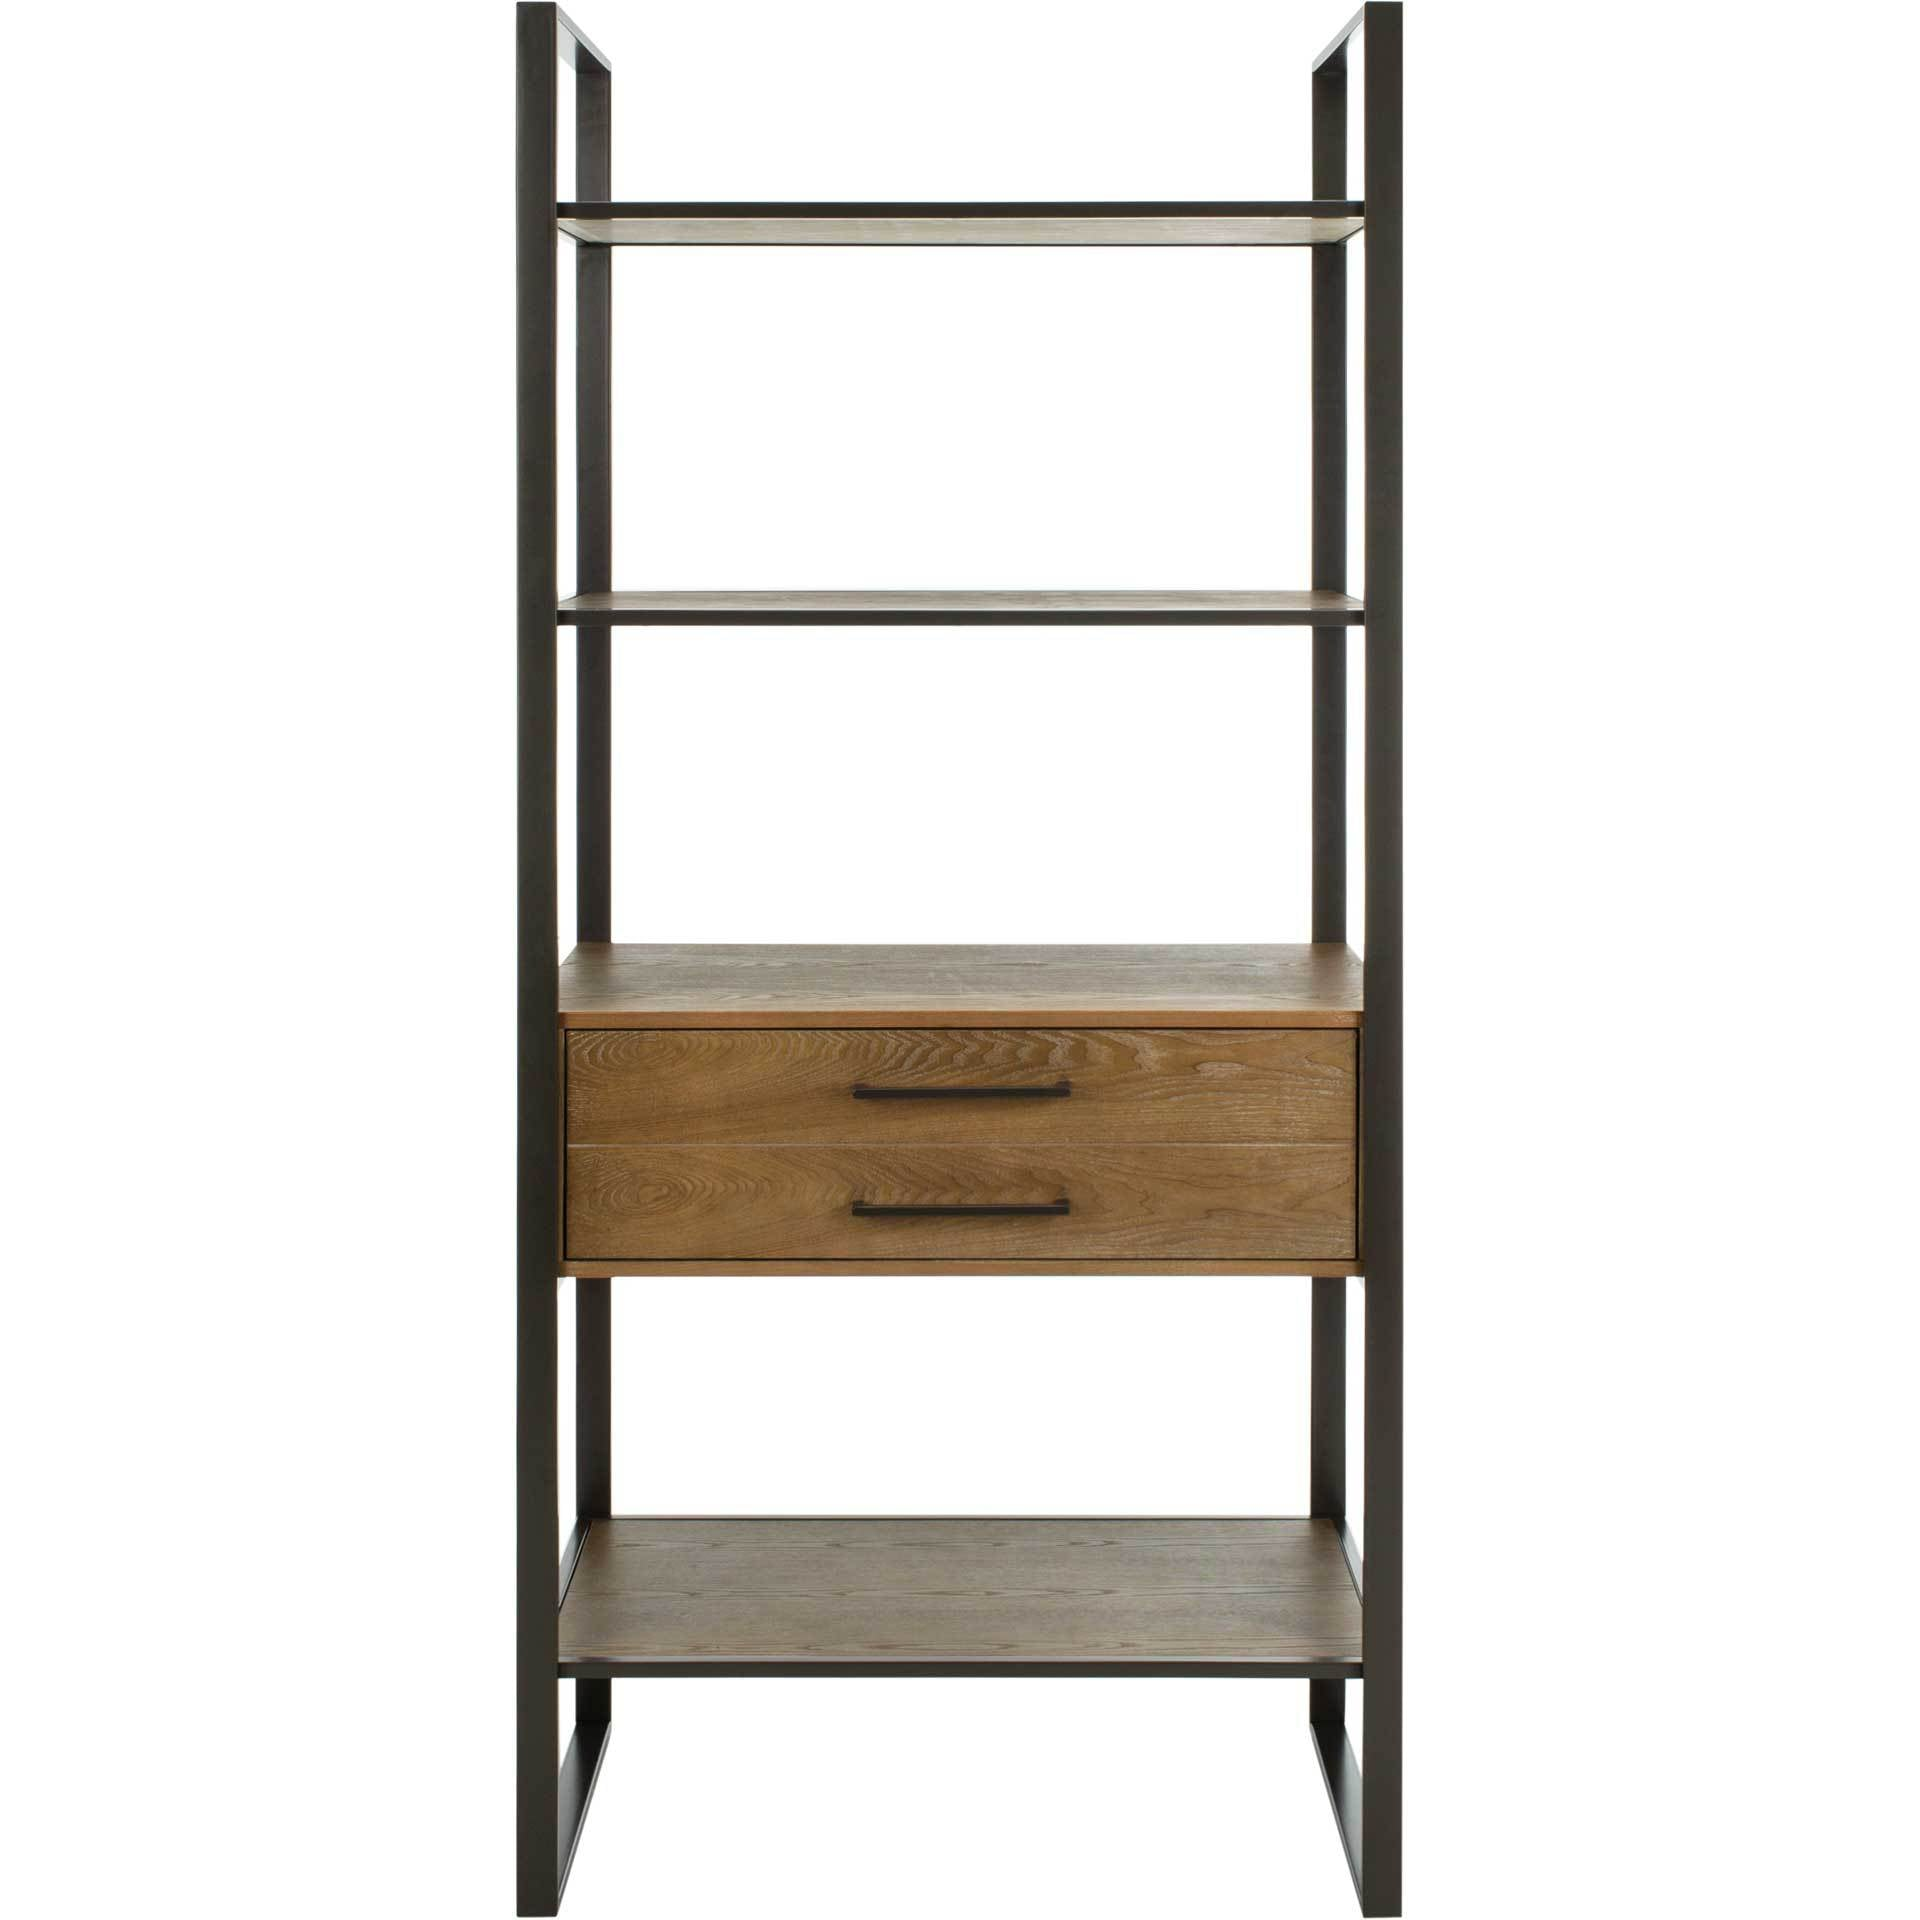 Skadi 4 Tier 1 Drawer Etagere Gun Metal/Rustic Oak